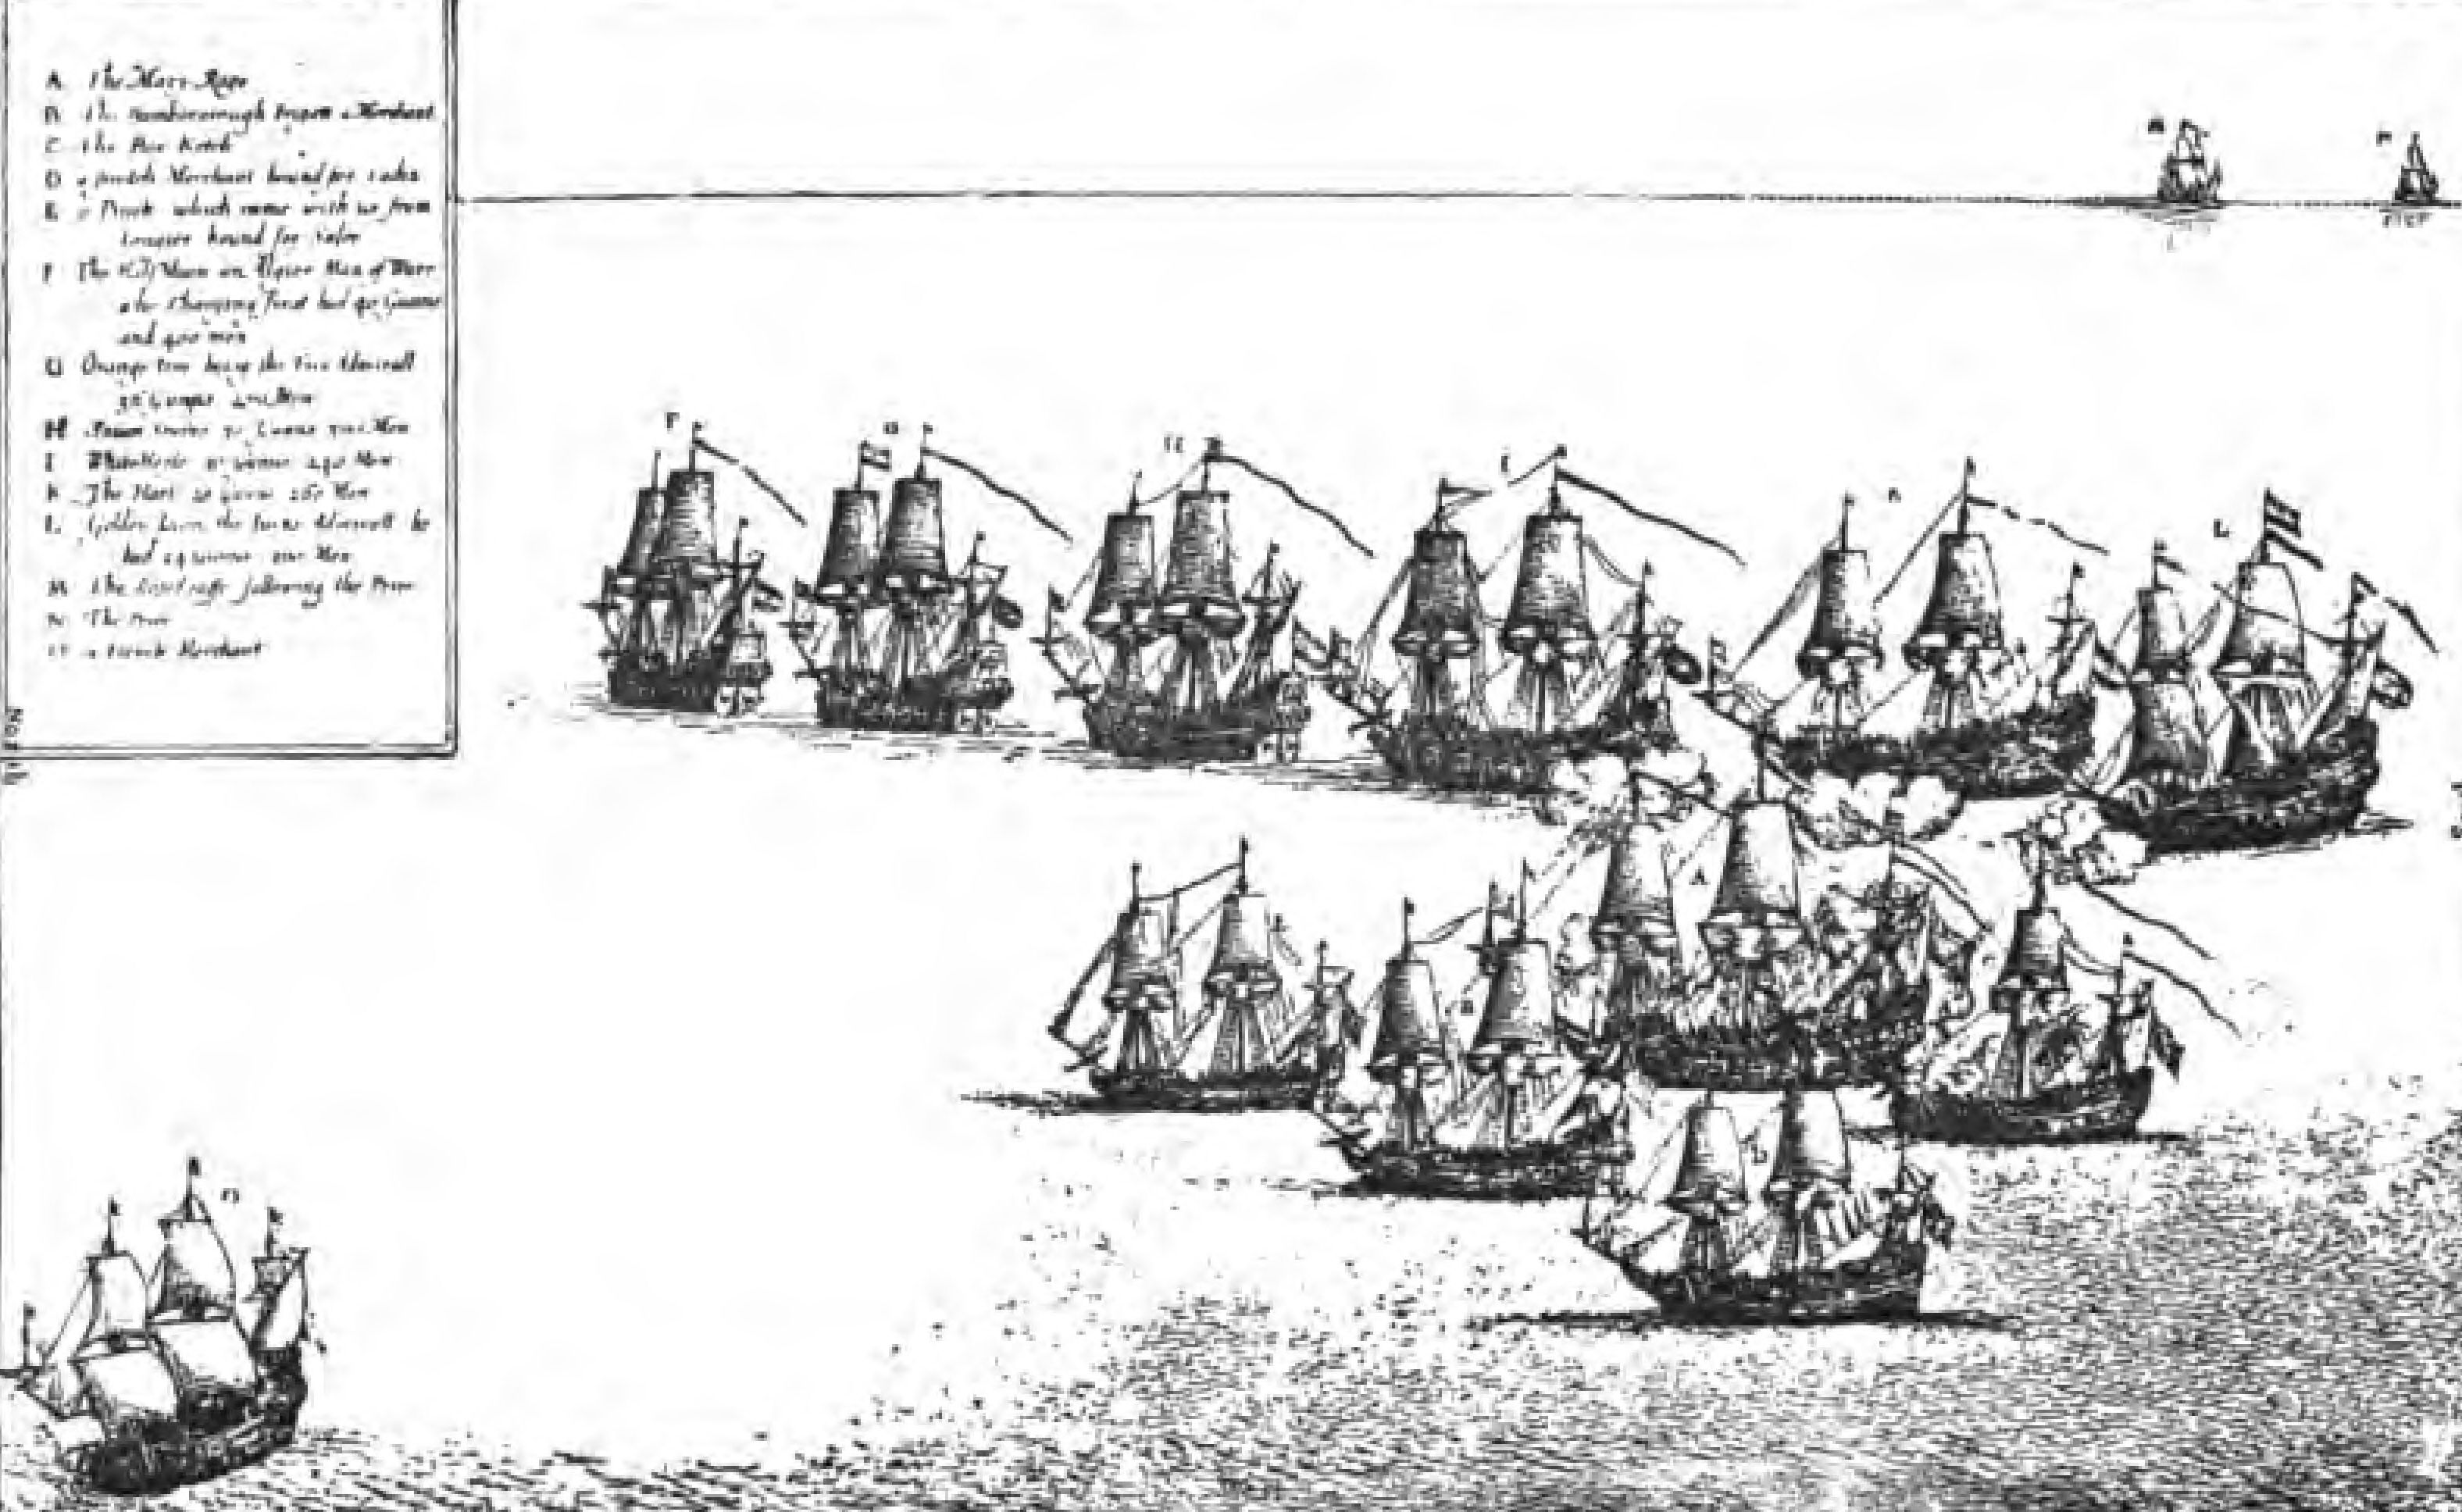 File:Fight of the Mary Rose with Algerine pirates, 1669.jpg